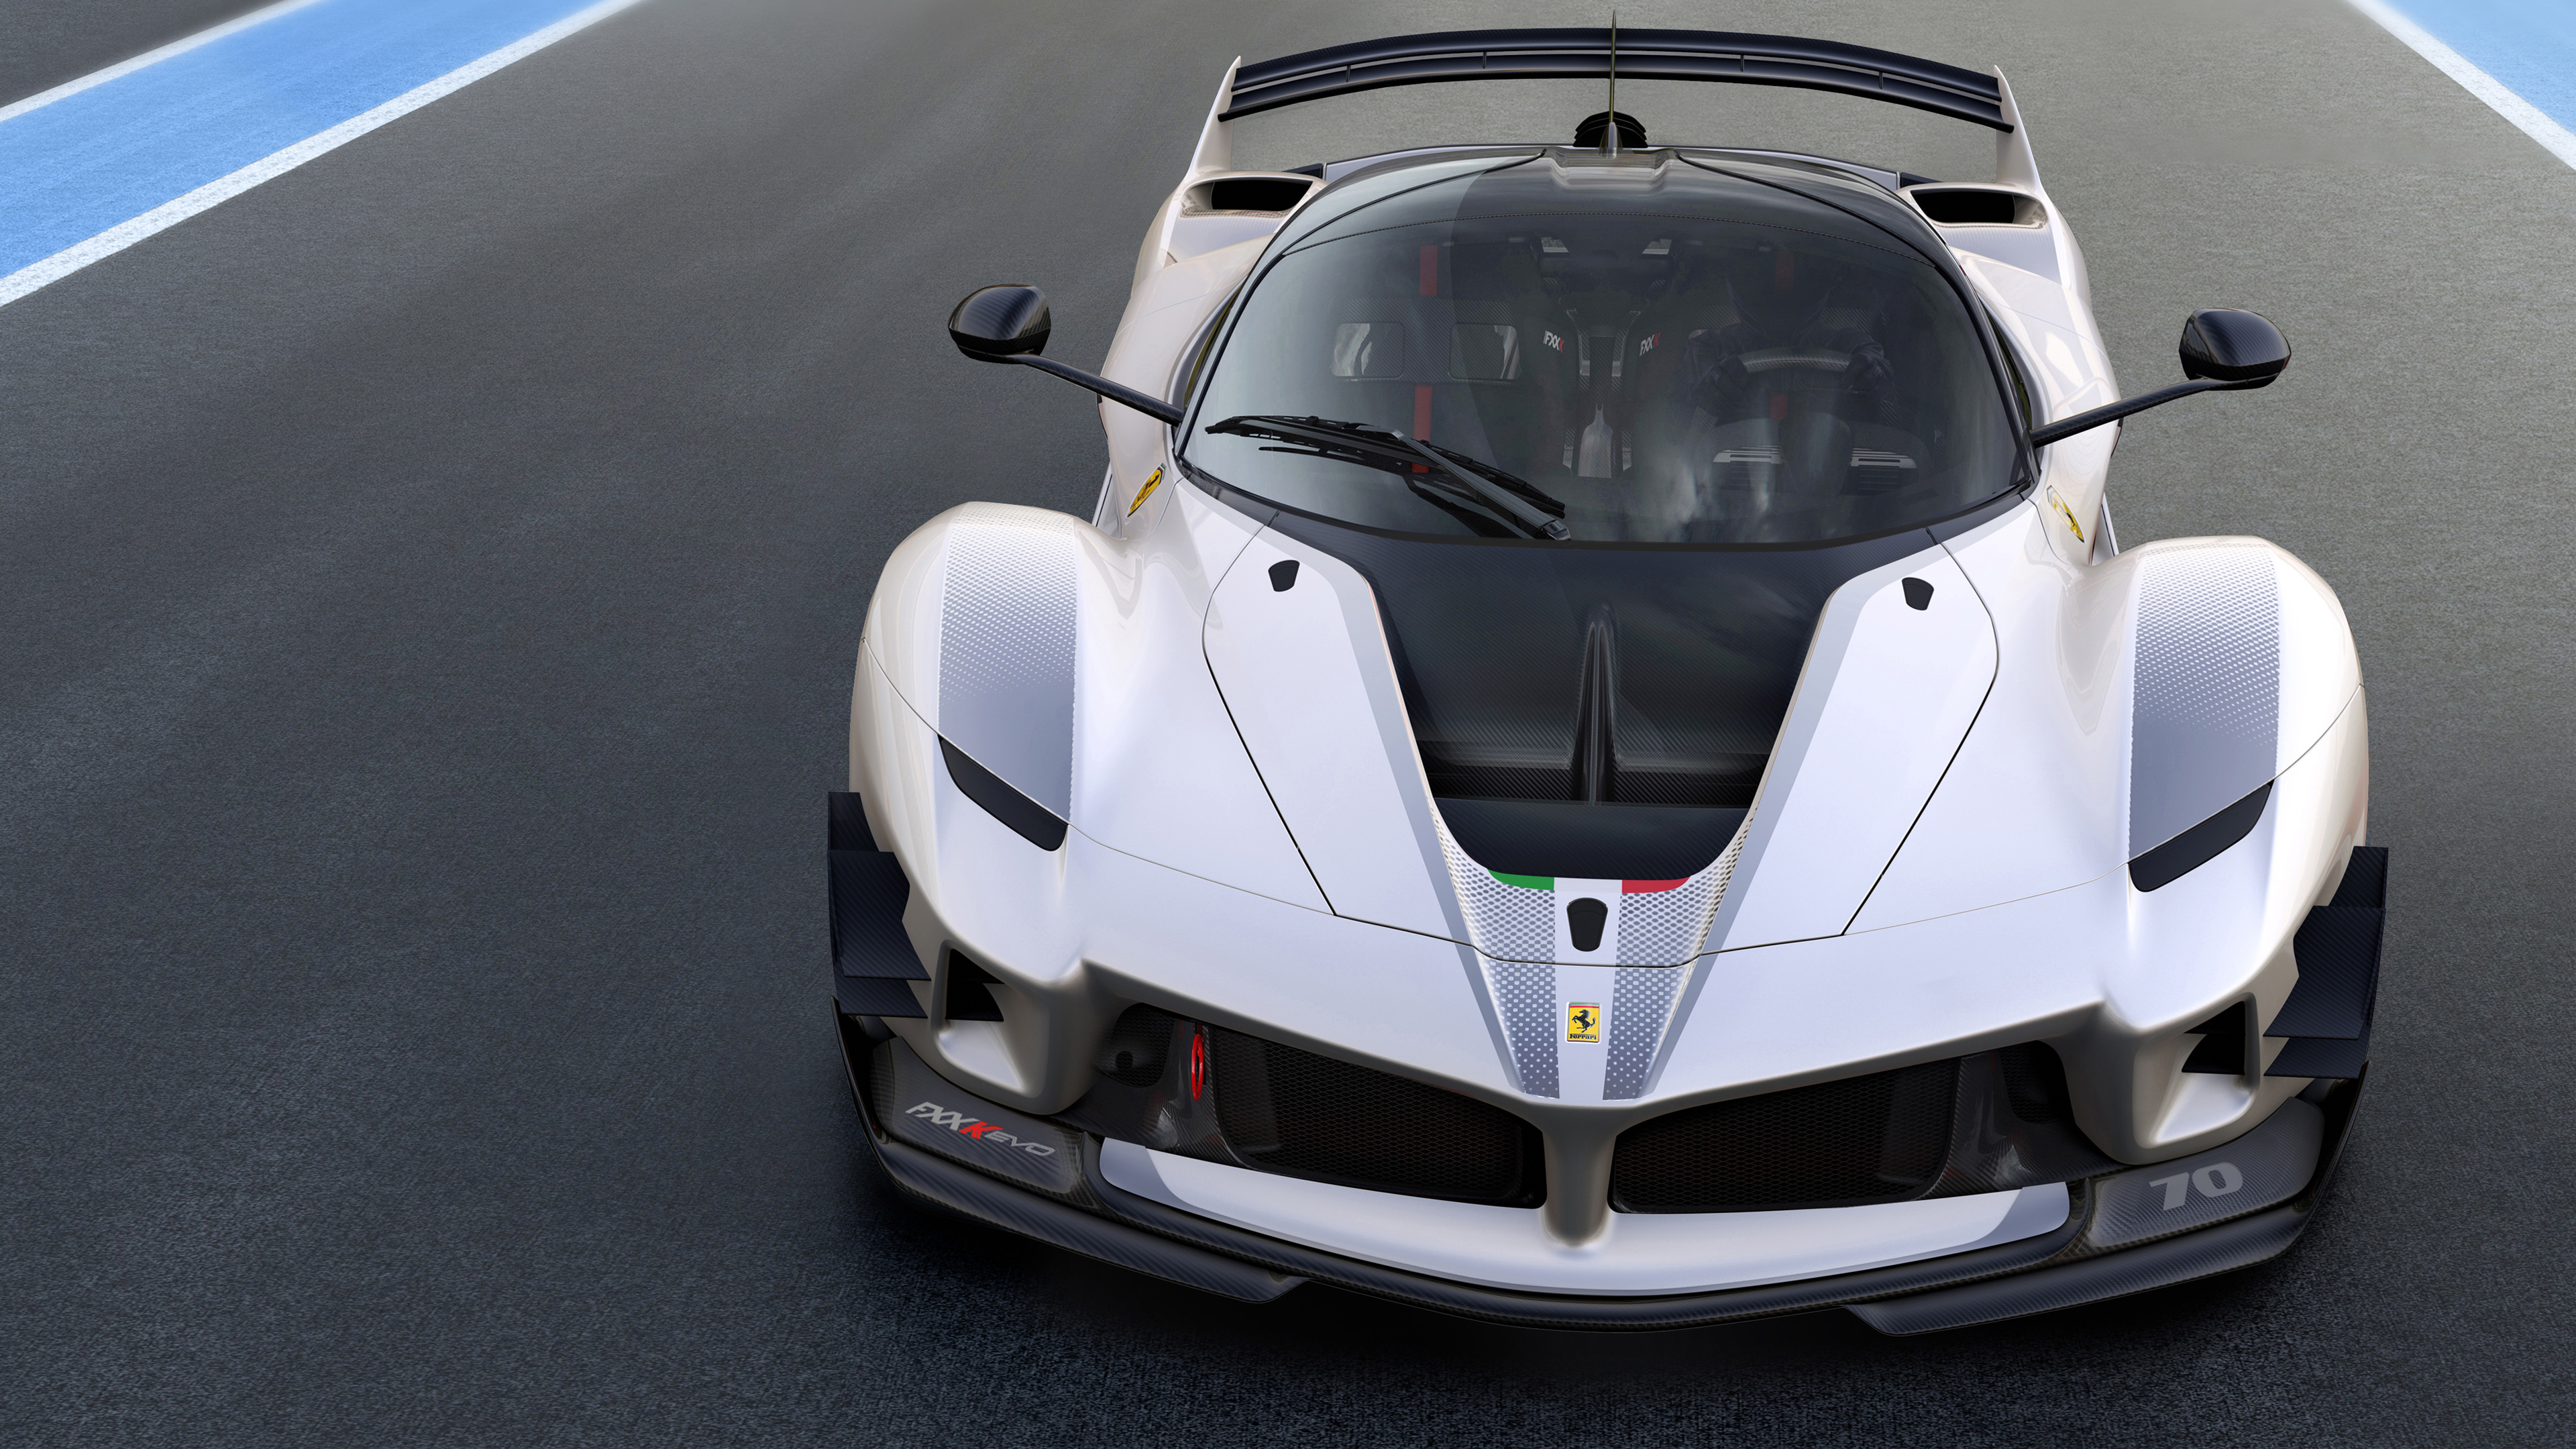 2018 ferrari fxx k evo 4k 4 wallpaper hd car wallpapers id 8960. Black Bedroom Furniture Sets. Home Design Ideas